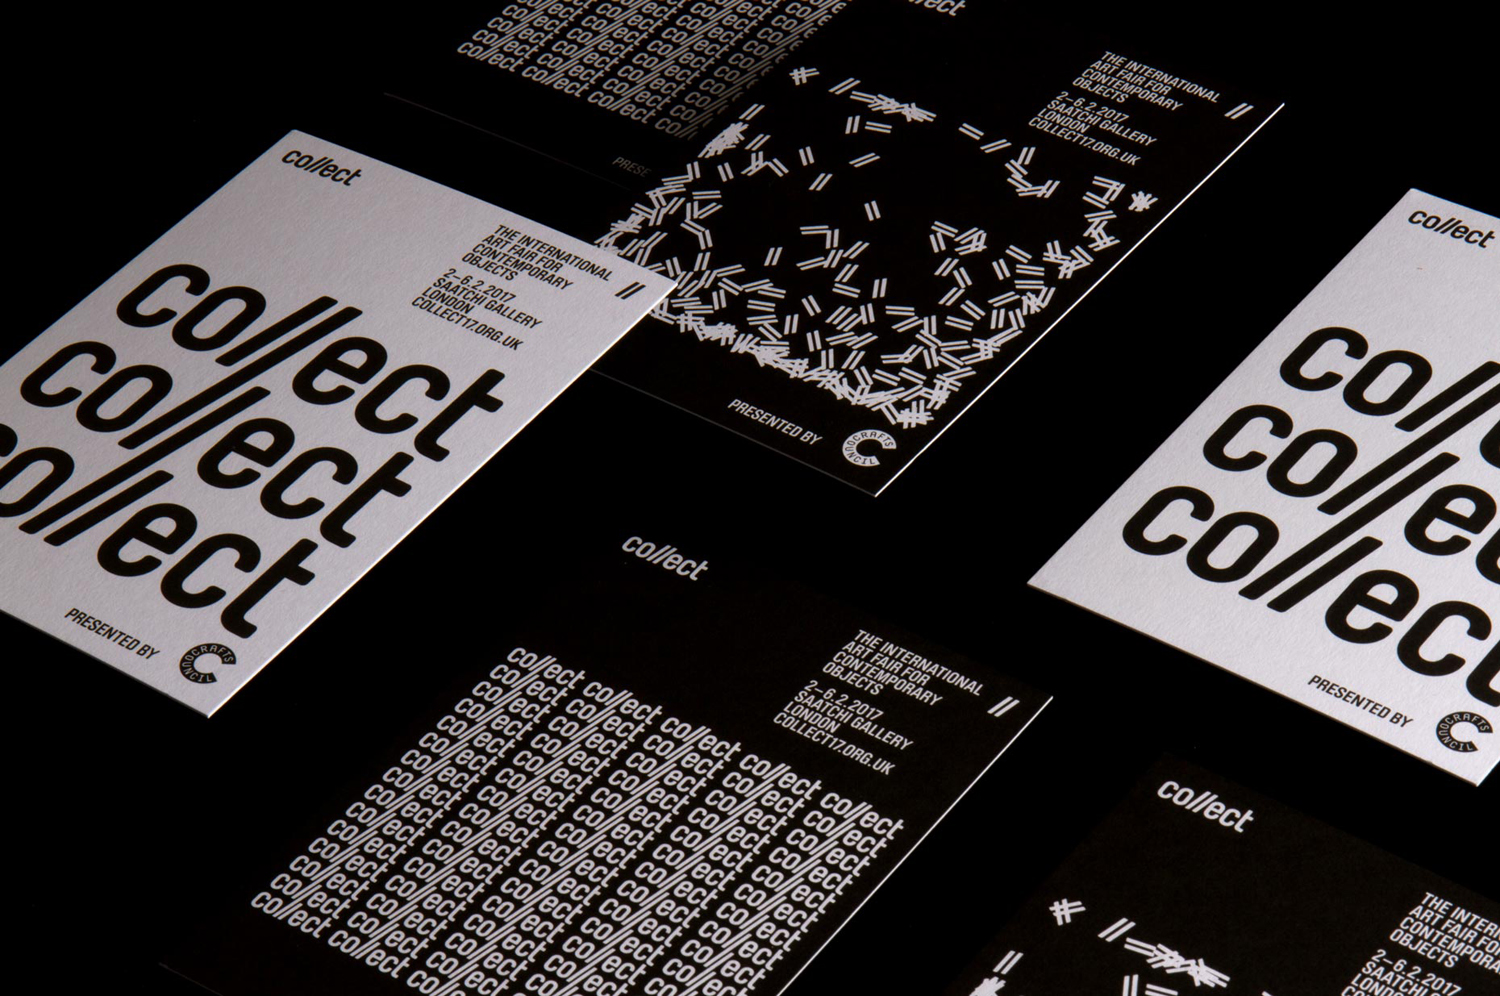 Brand identity and print for contemporary international art fair Collect, designed by Spin, London, UK